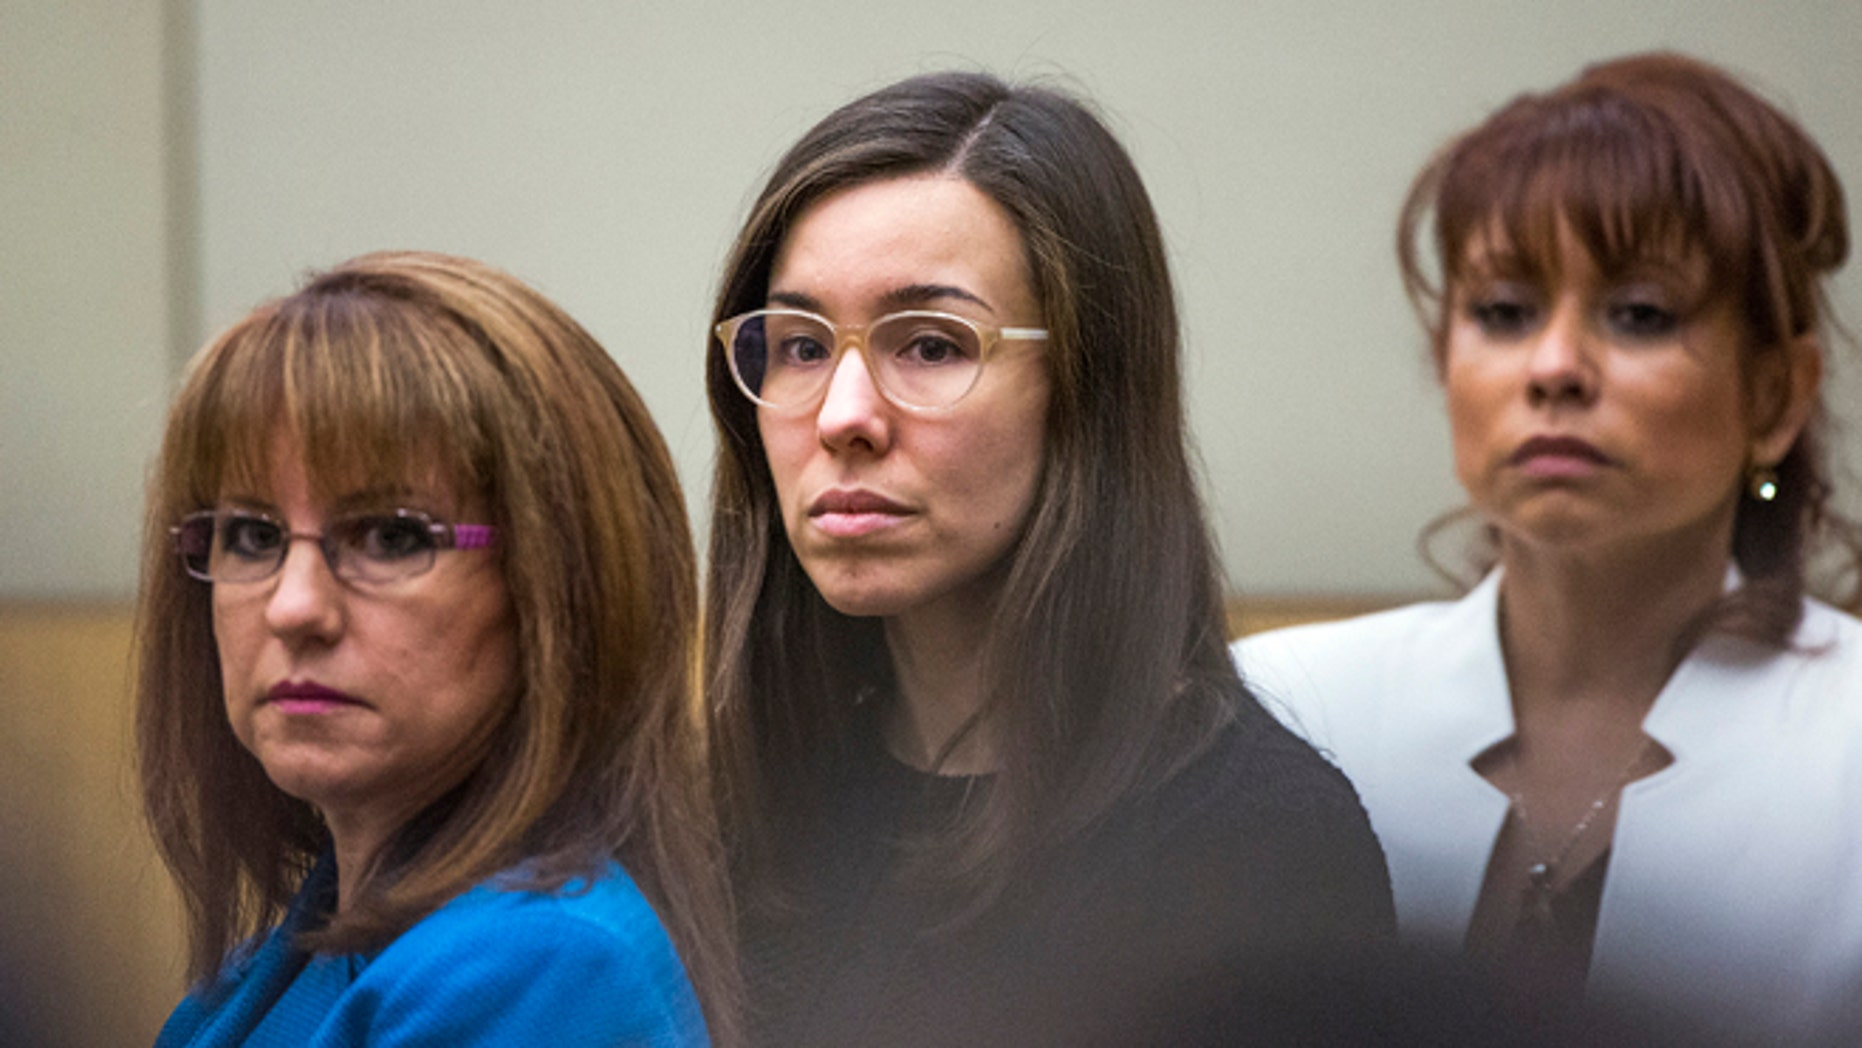 FILE - Convicted murderer Jodi Arias, center, watches the jury enter the courtroom before hearing their verdict in this March 5, 2015 file photo taken in Maricopa County Superior Court in Phoenix. A court document released Tuesday March 10, 2015 by the judge in the case reveals the behind-the-scenes wrangling in the jury room as Arias' fate hung in the balance. (AP Photo/The Arizona Republic, Tom Tingle, Pool, File)